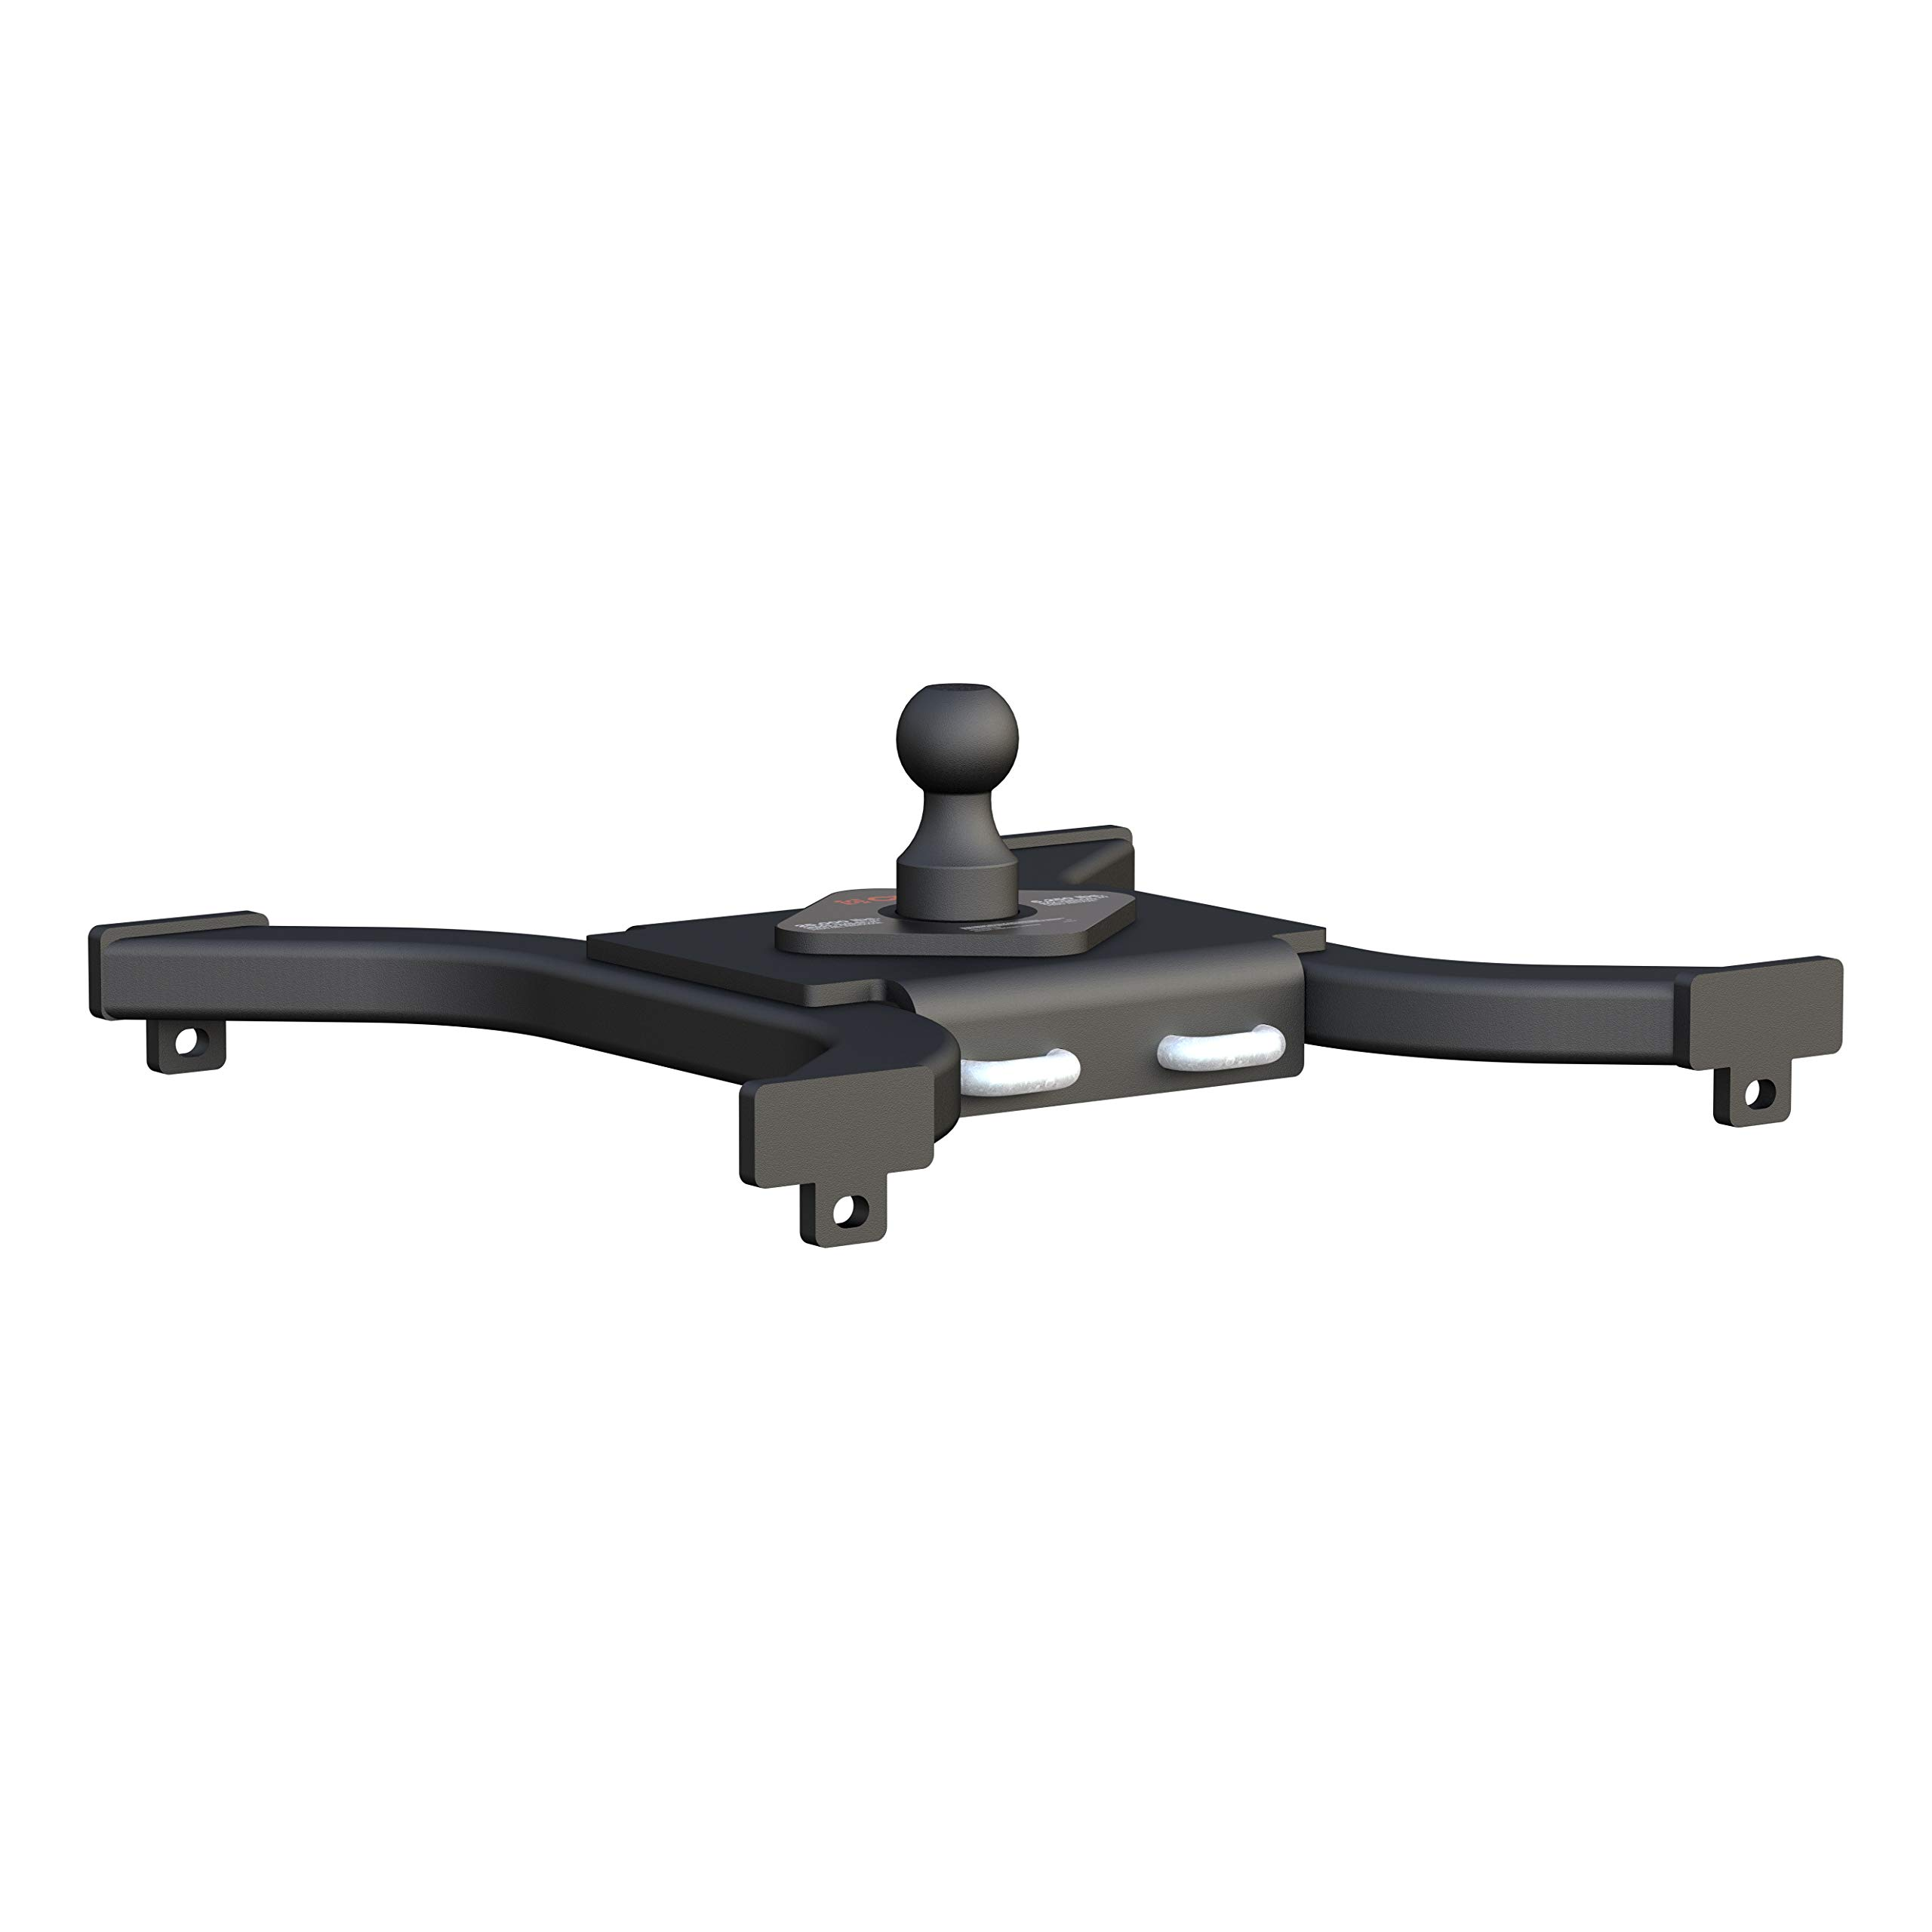 CURT 16085 Spyder 5th Wheel to Gooseneck Adapter Hitch, Fits Industry-Standard Rails, 25,000 lbs., 2-5/16-Inch Ball by CURT